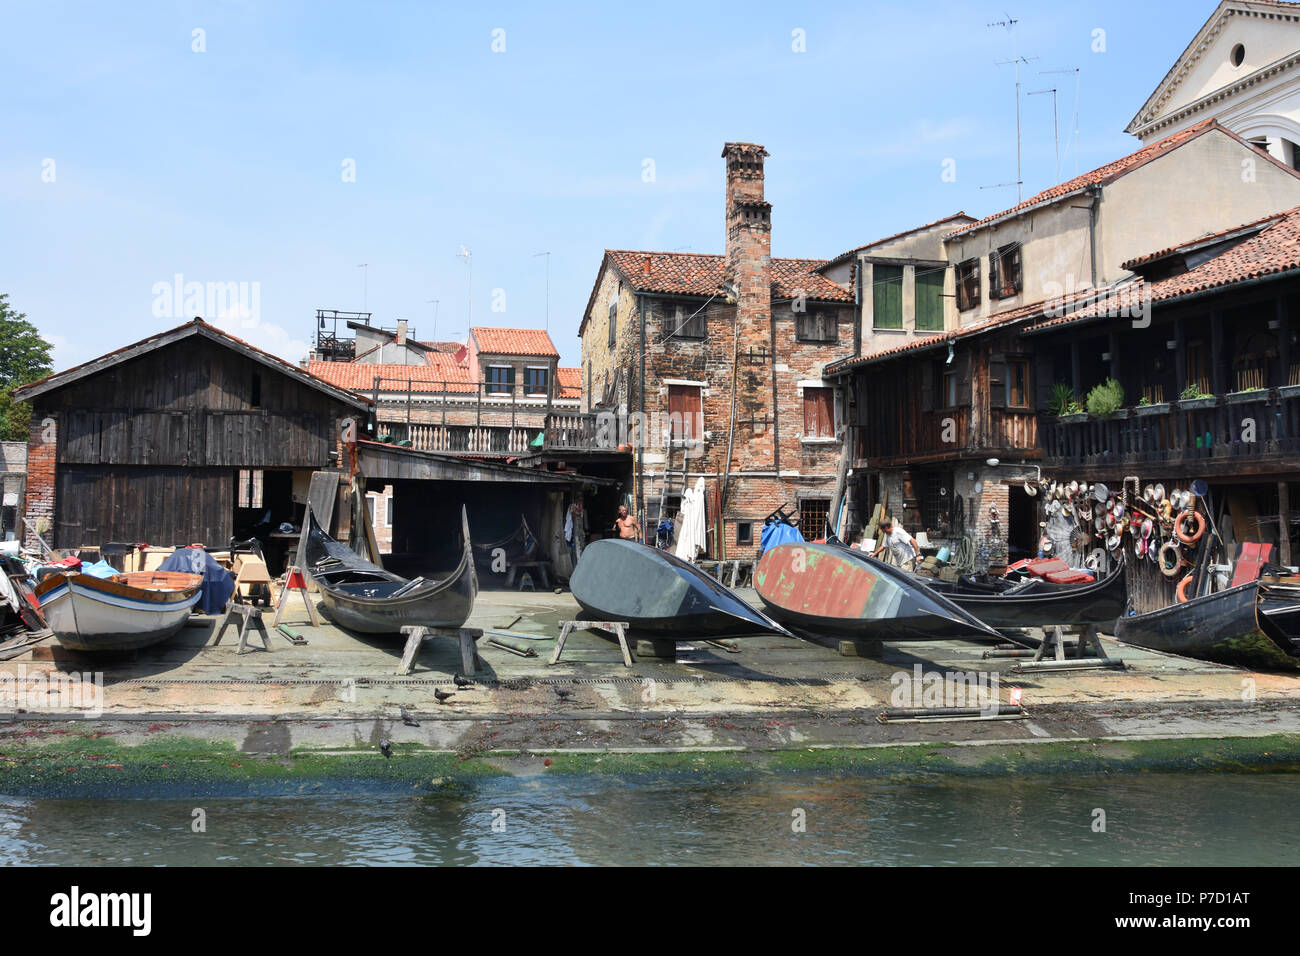 Typical Venetian shipyard where boats of small dimensions are created, built and repaired like gondolas, pupparini, sandoli, sciopòni and other boats typical of the Venetian lagoon tradition. (The squero di San Trovaso rises along the homonymous river and dates back to before the 17th century.) Painting same Location Venice, Venetian, Italy, Italian, - Stock Image